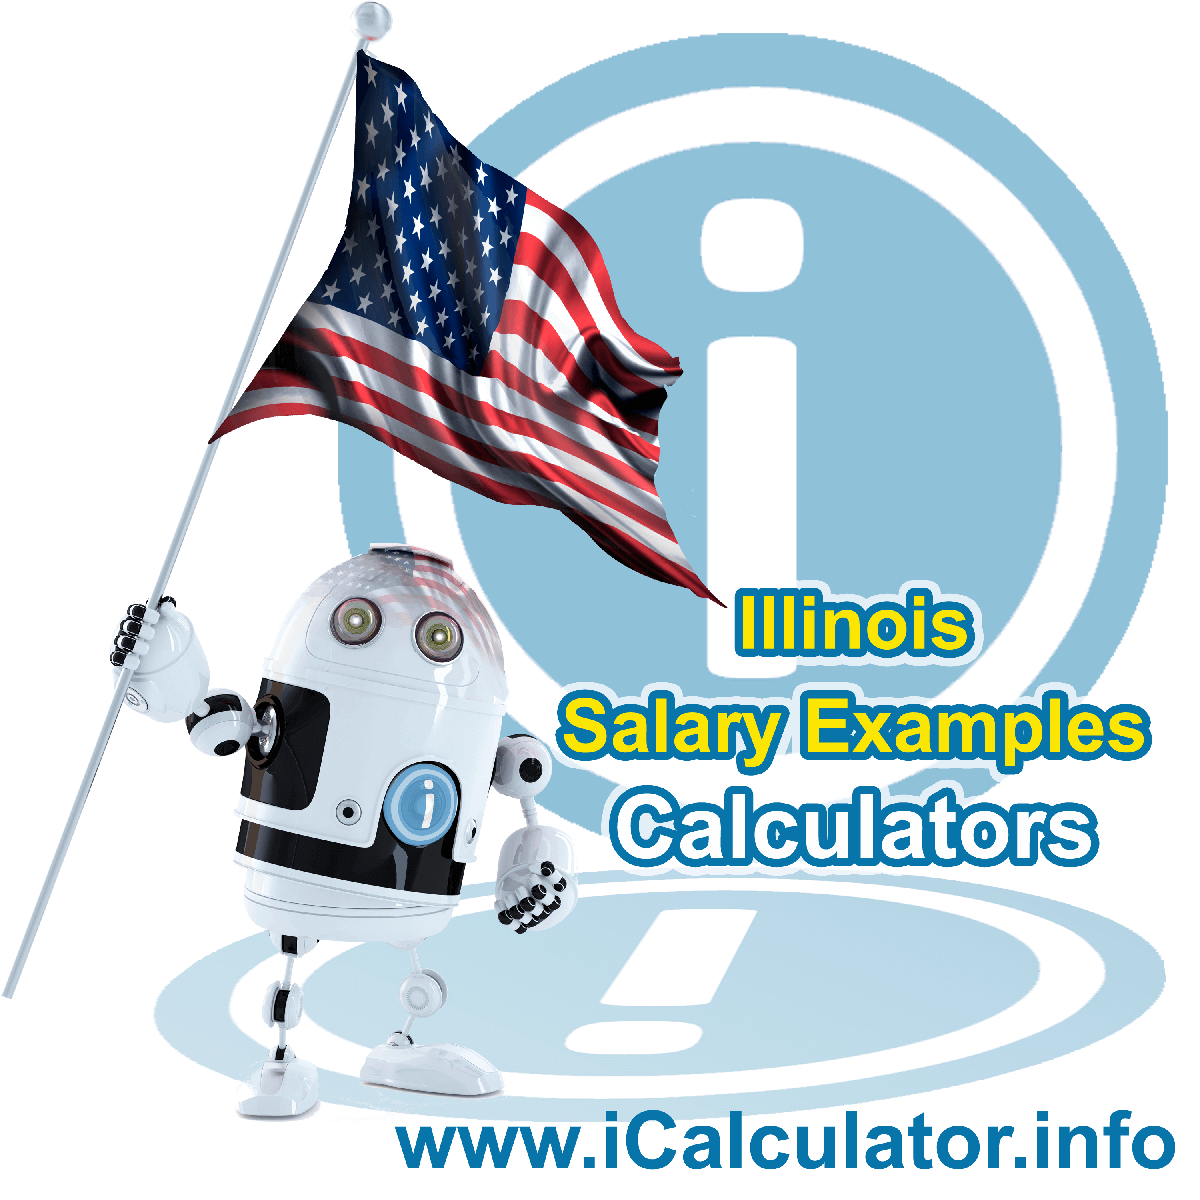 Illinois Salary Example for $140,000.00 in 2020 | iCalculator | $140,000.00 salary example for employee and employer paying Illinois State tincome taxes. Detailed salary after tax calculation including Illinois State Tax, Federal State Tax, Medicare Deductions, Social Security, Capital Gains and other income tax and salary deductions complete with supporting Illinois state tax tables